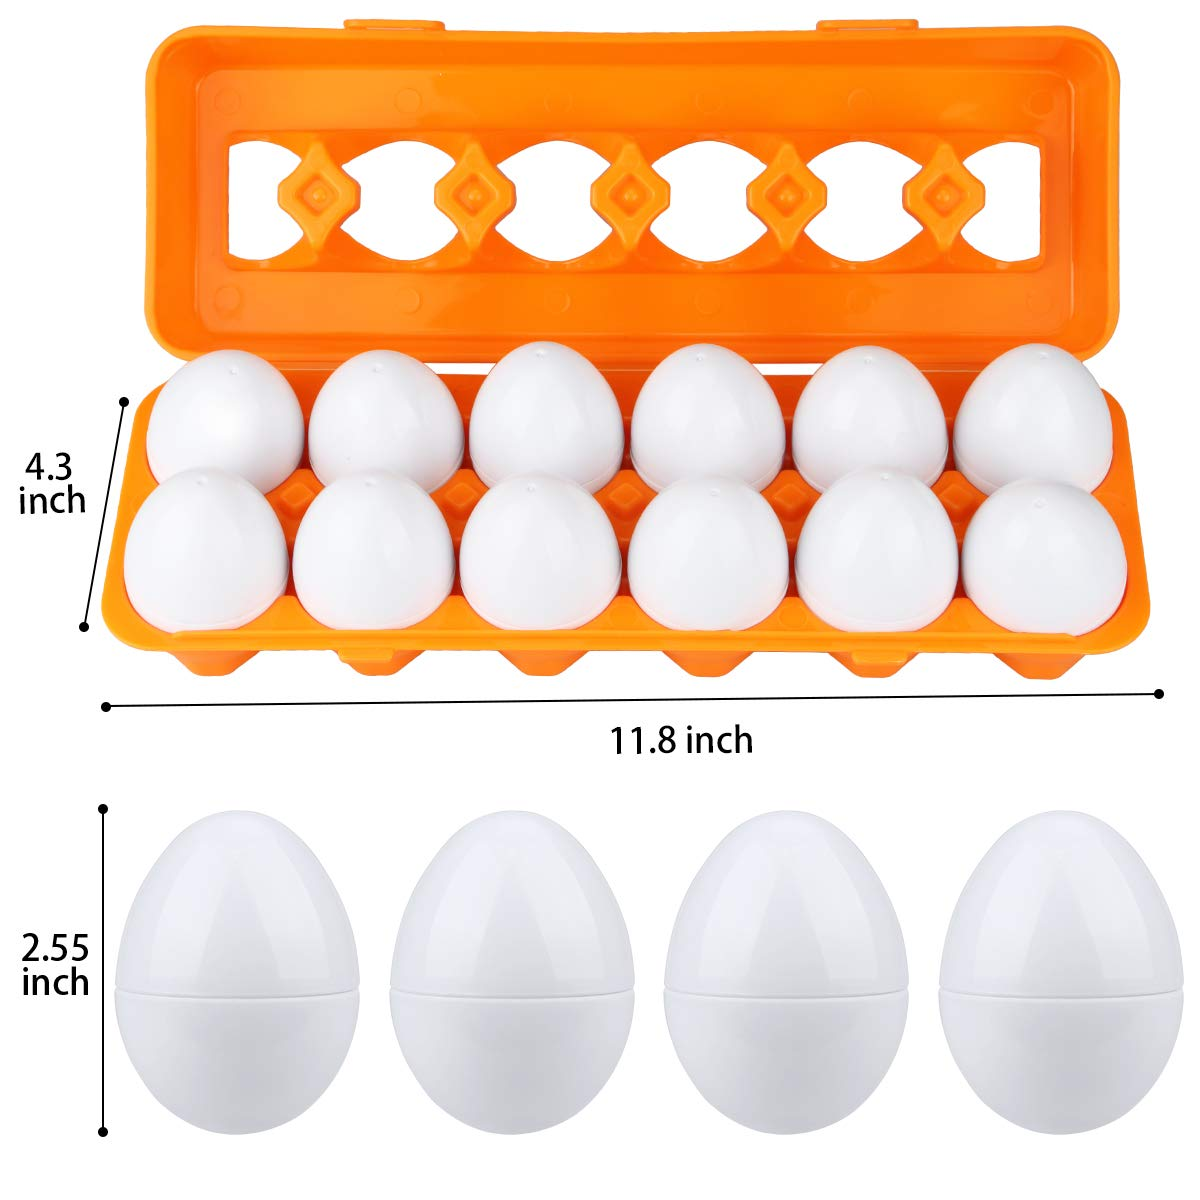 Aiduy Toddler Egg Set Toys, Educational Colour Matching Shape Sorting Learning Toys for 1 2 3 Year Old Kids Boy Girls (12pcs)